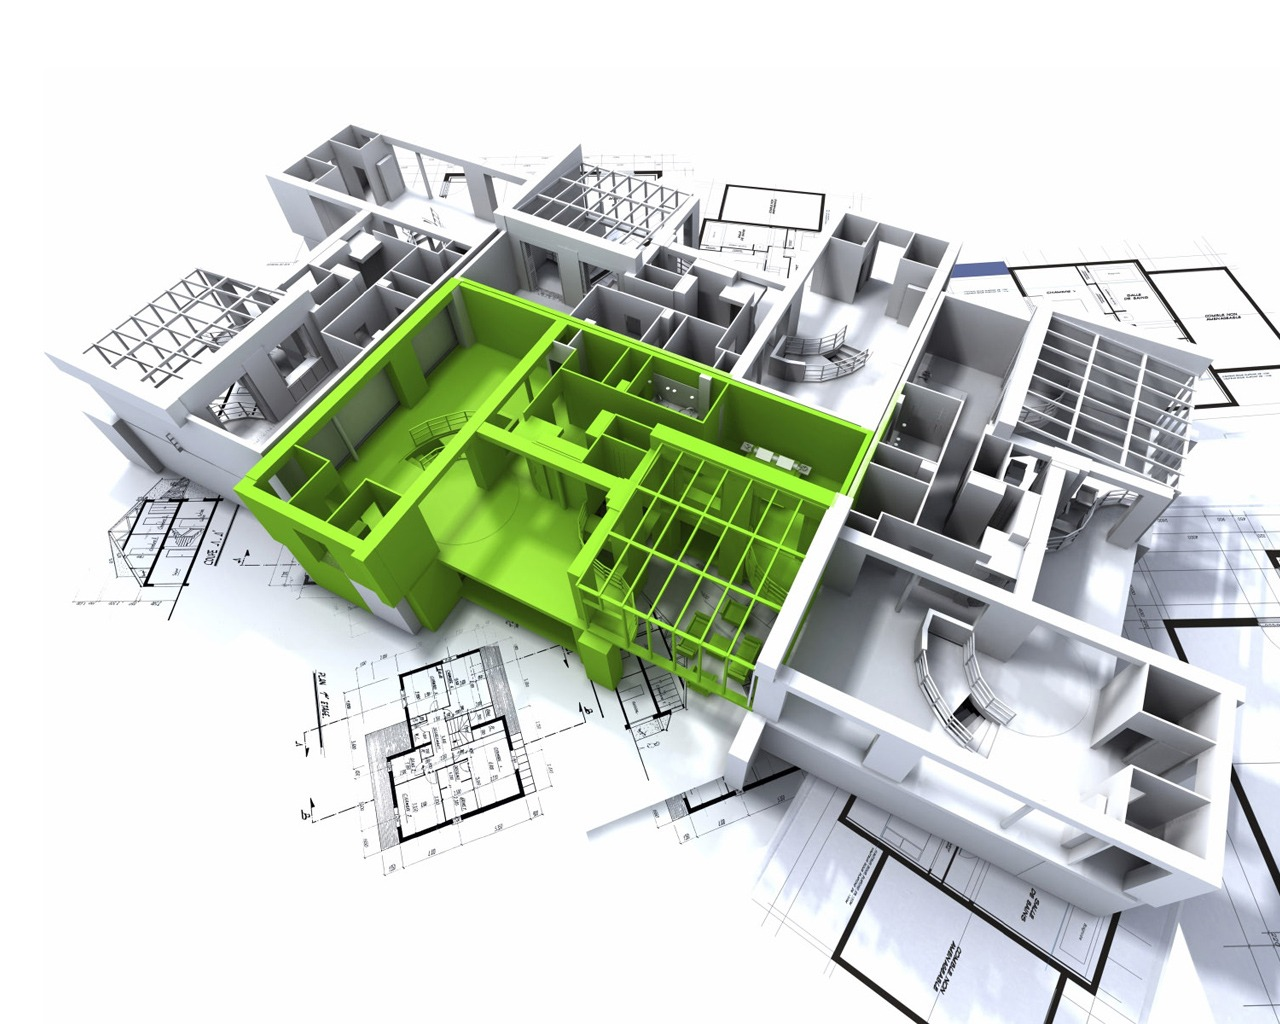 3D Architectural Drafting Designs